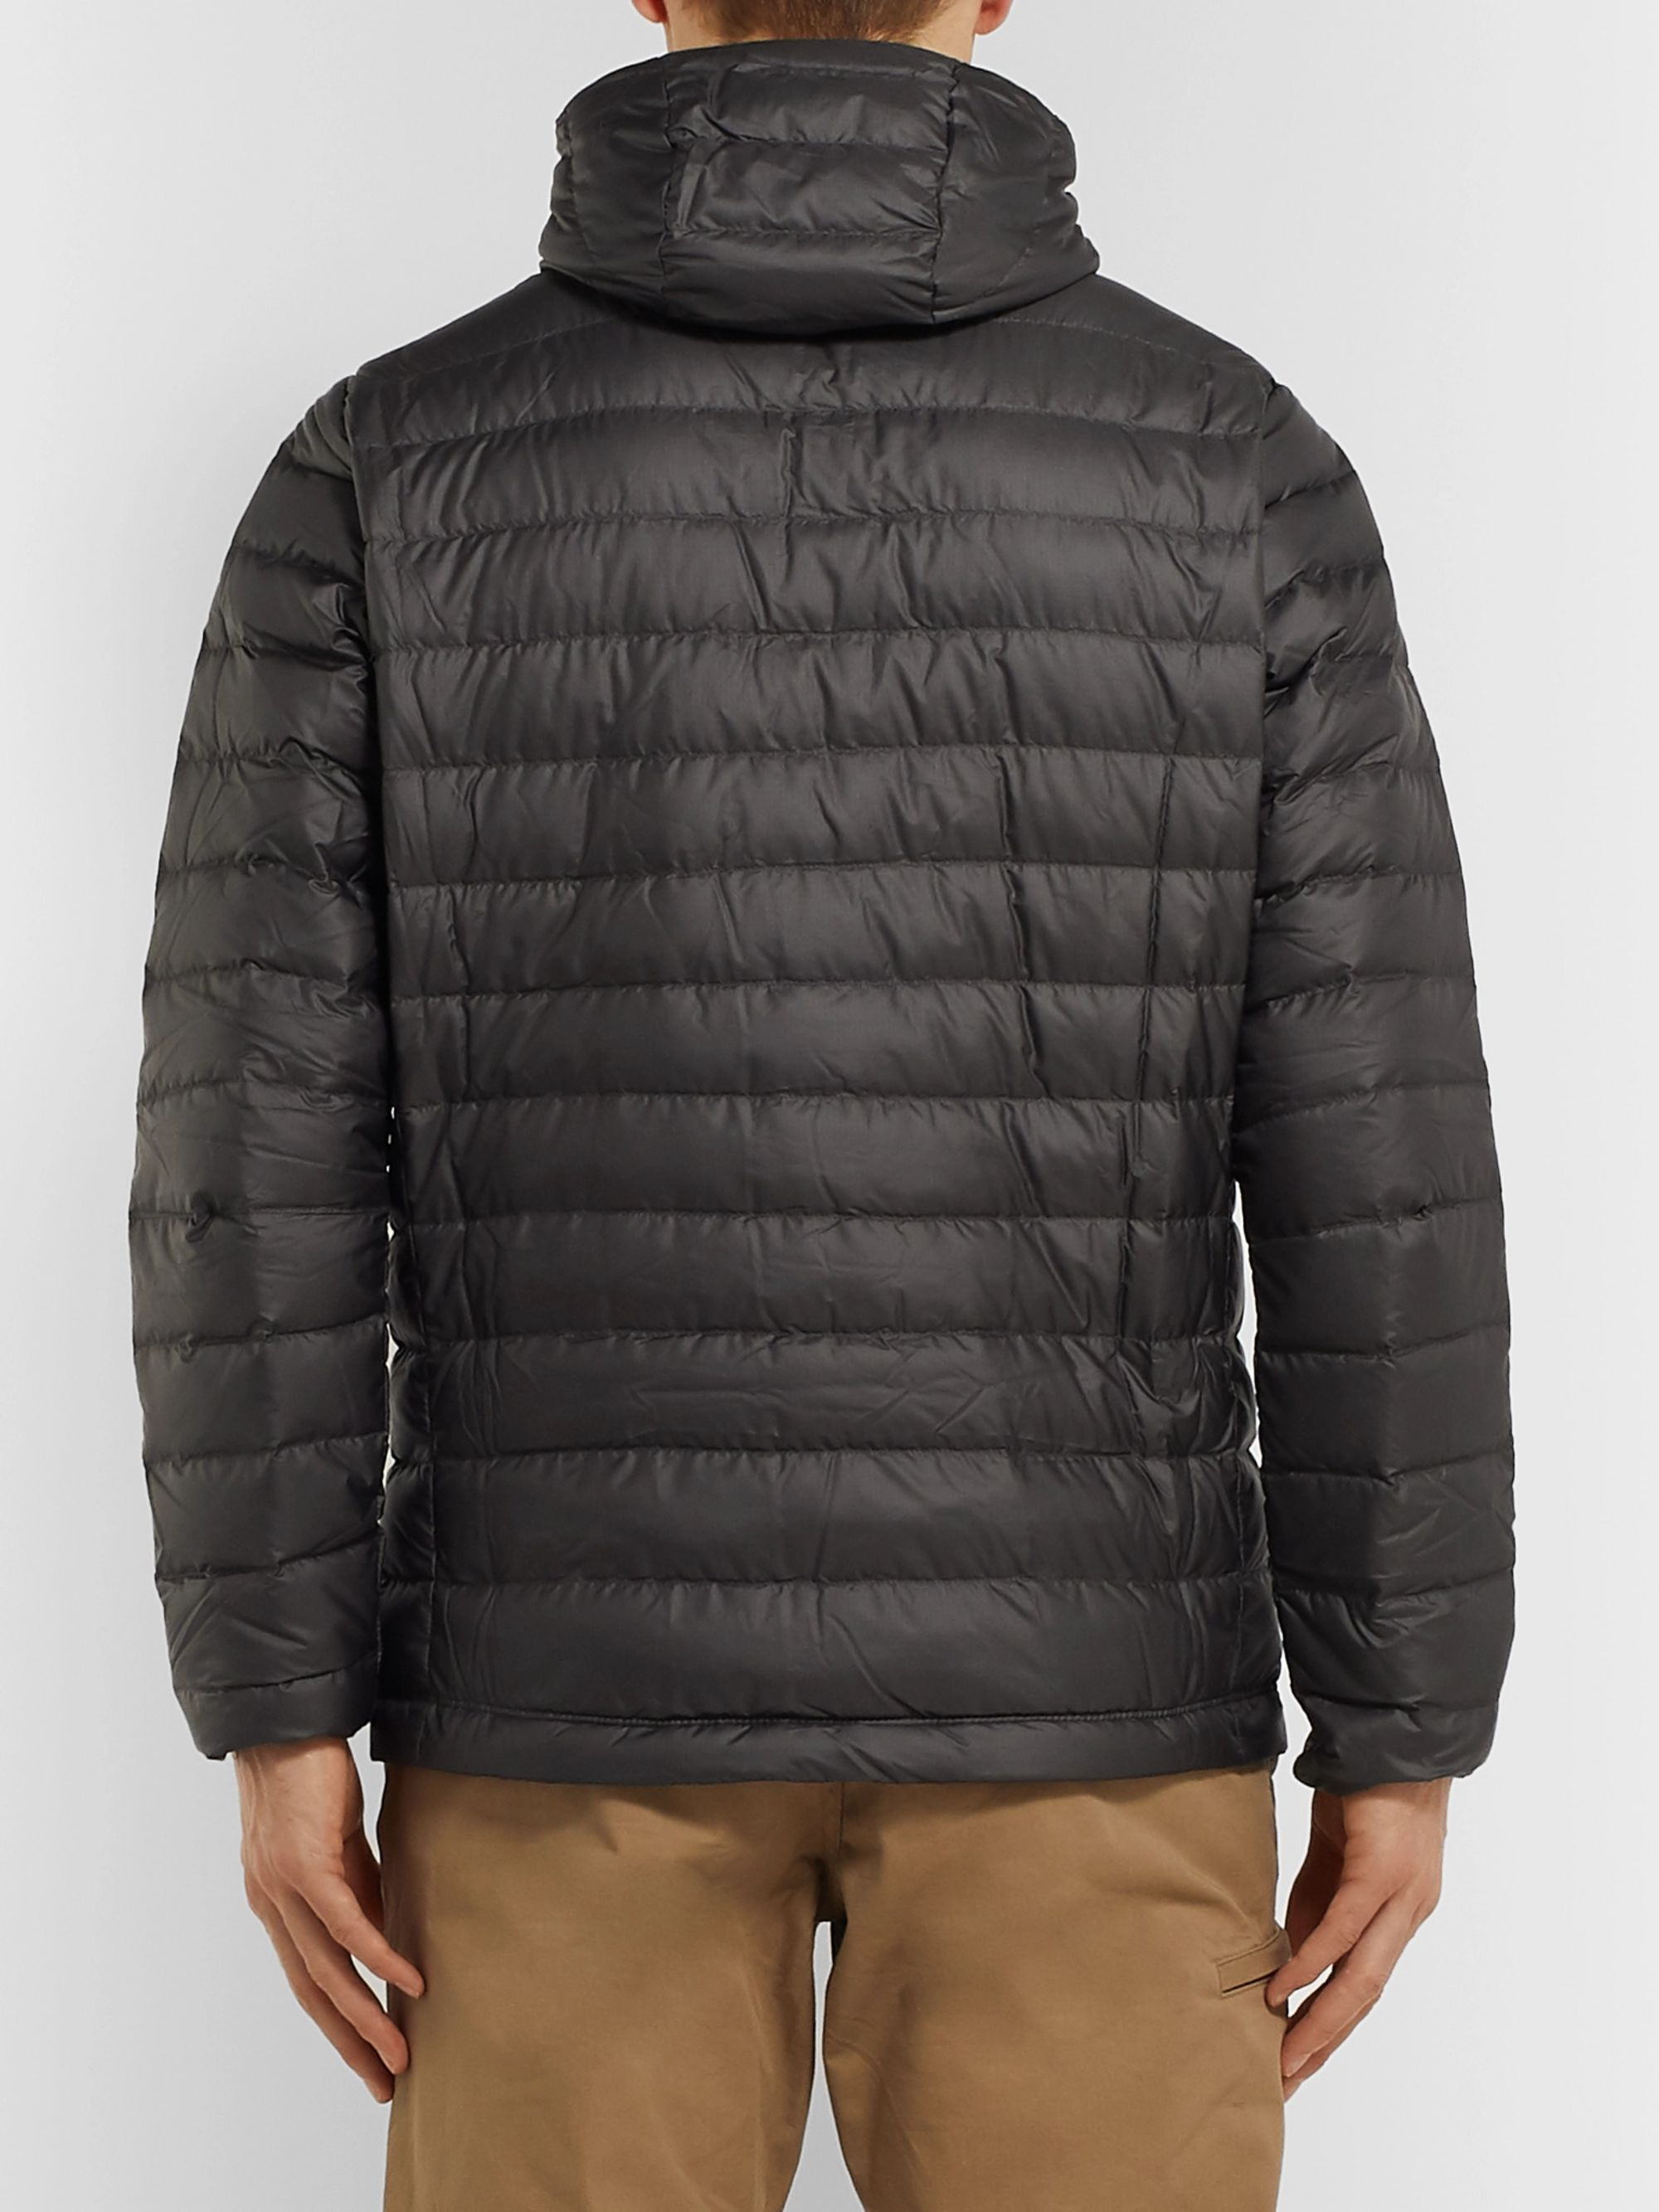 Patagonia Quilted DWR-Coated Ripstop Hooded Down Jacket